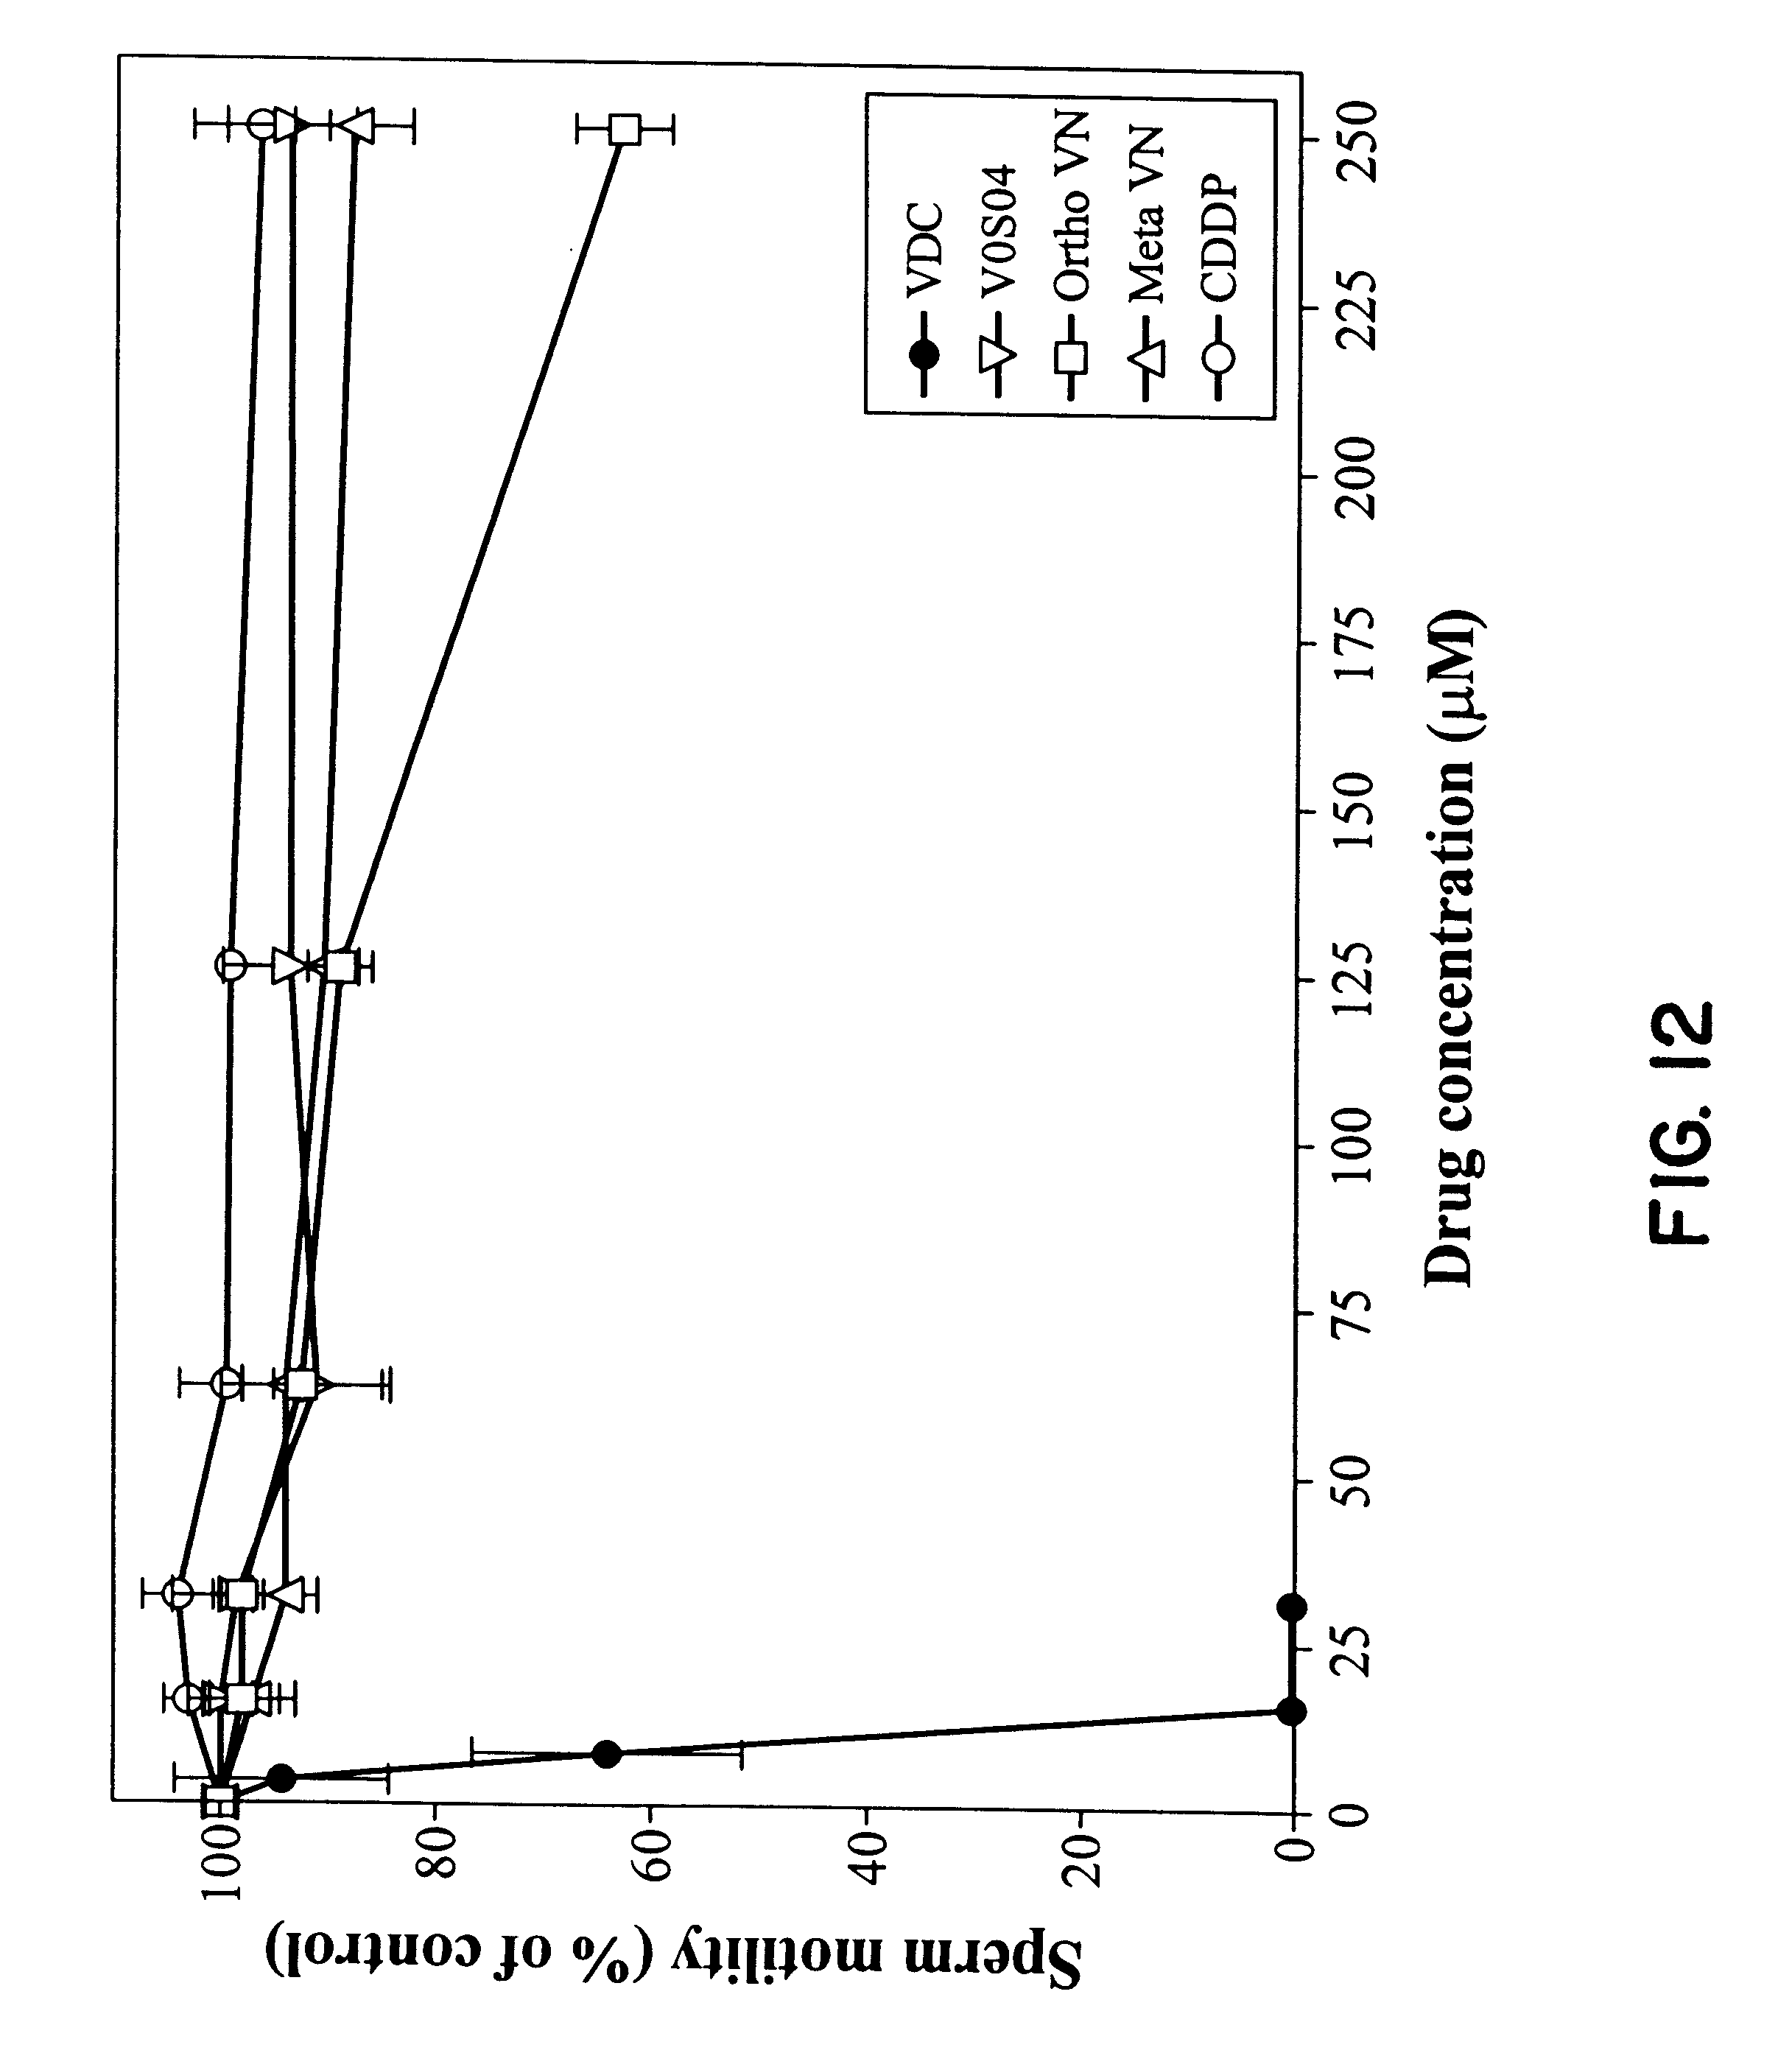 sperm motility inhibiting activity of a Contraception 2005 may71(5):372-8 a potent sperm motility-inhibiting activity of  bioflavonoids from an ethnomedicine of onge, alstonia macrophylla wall ex a.